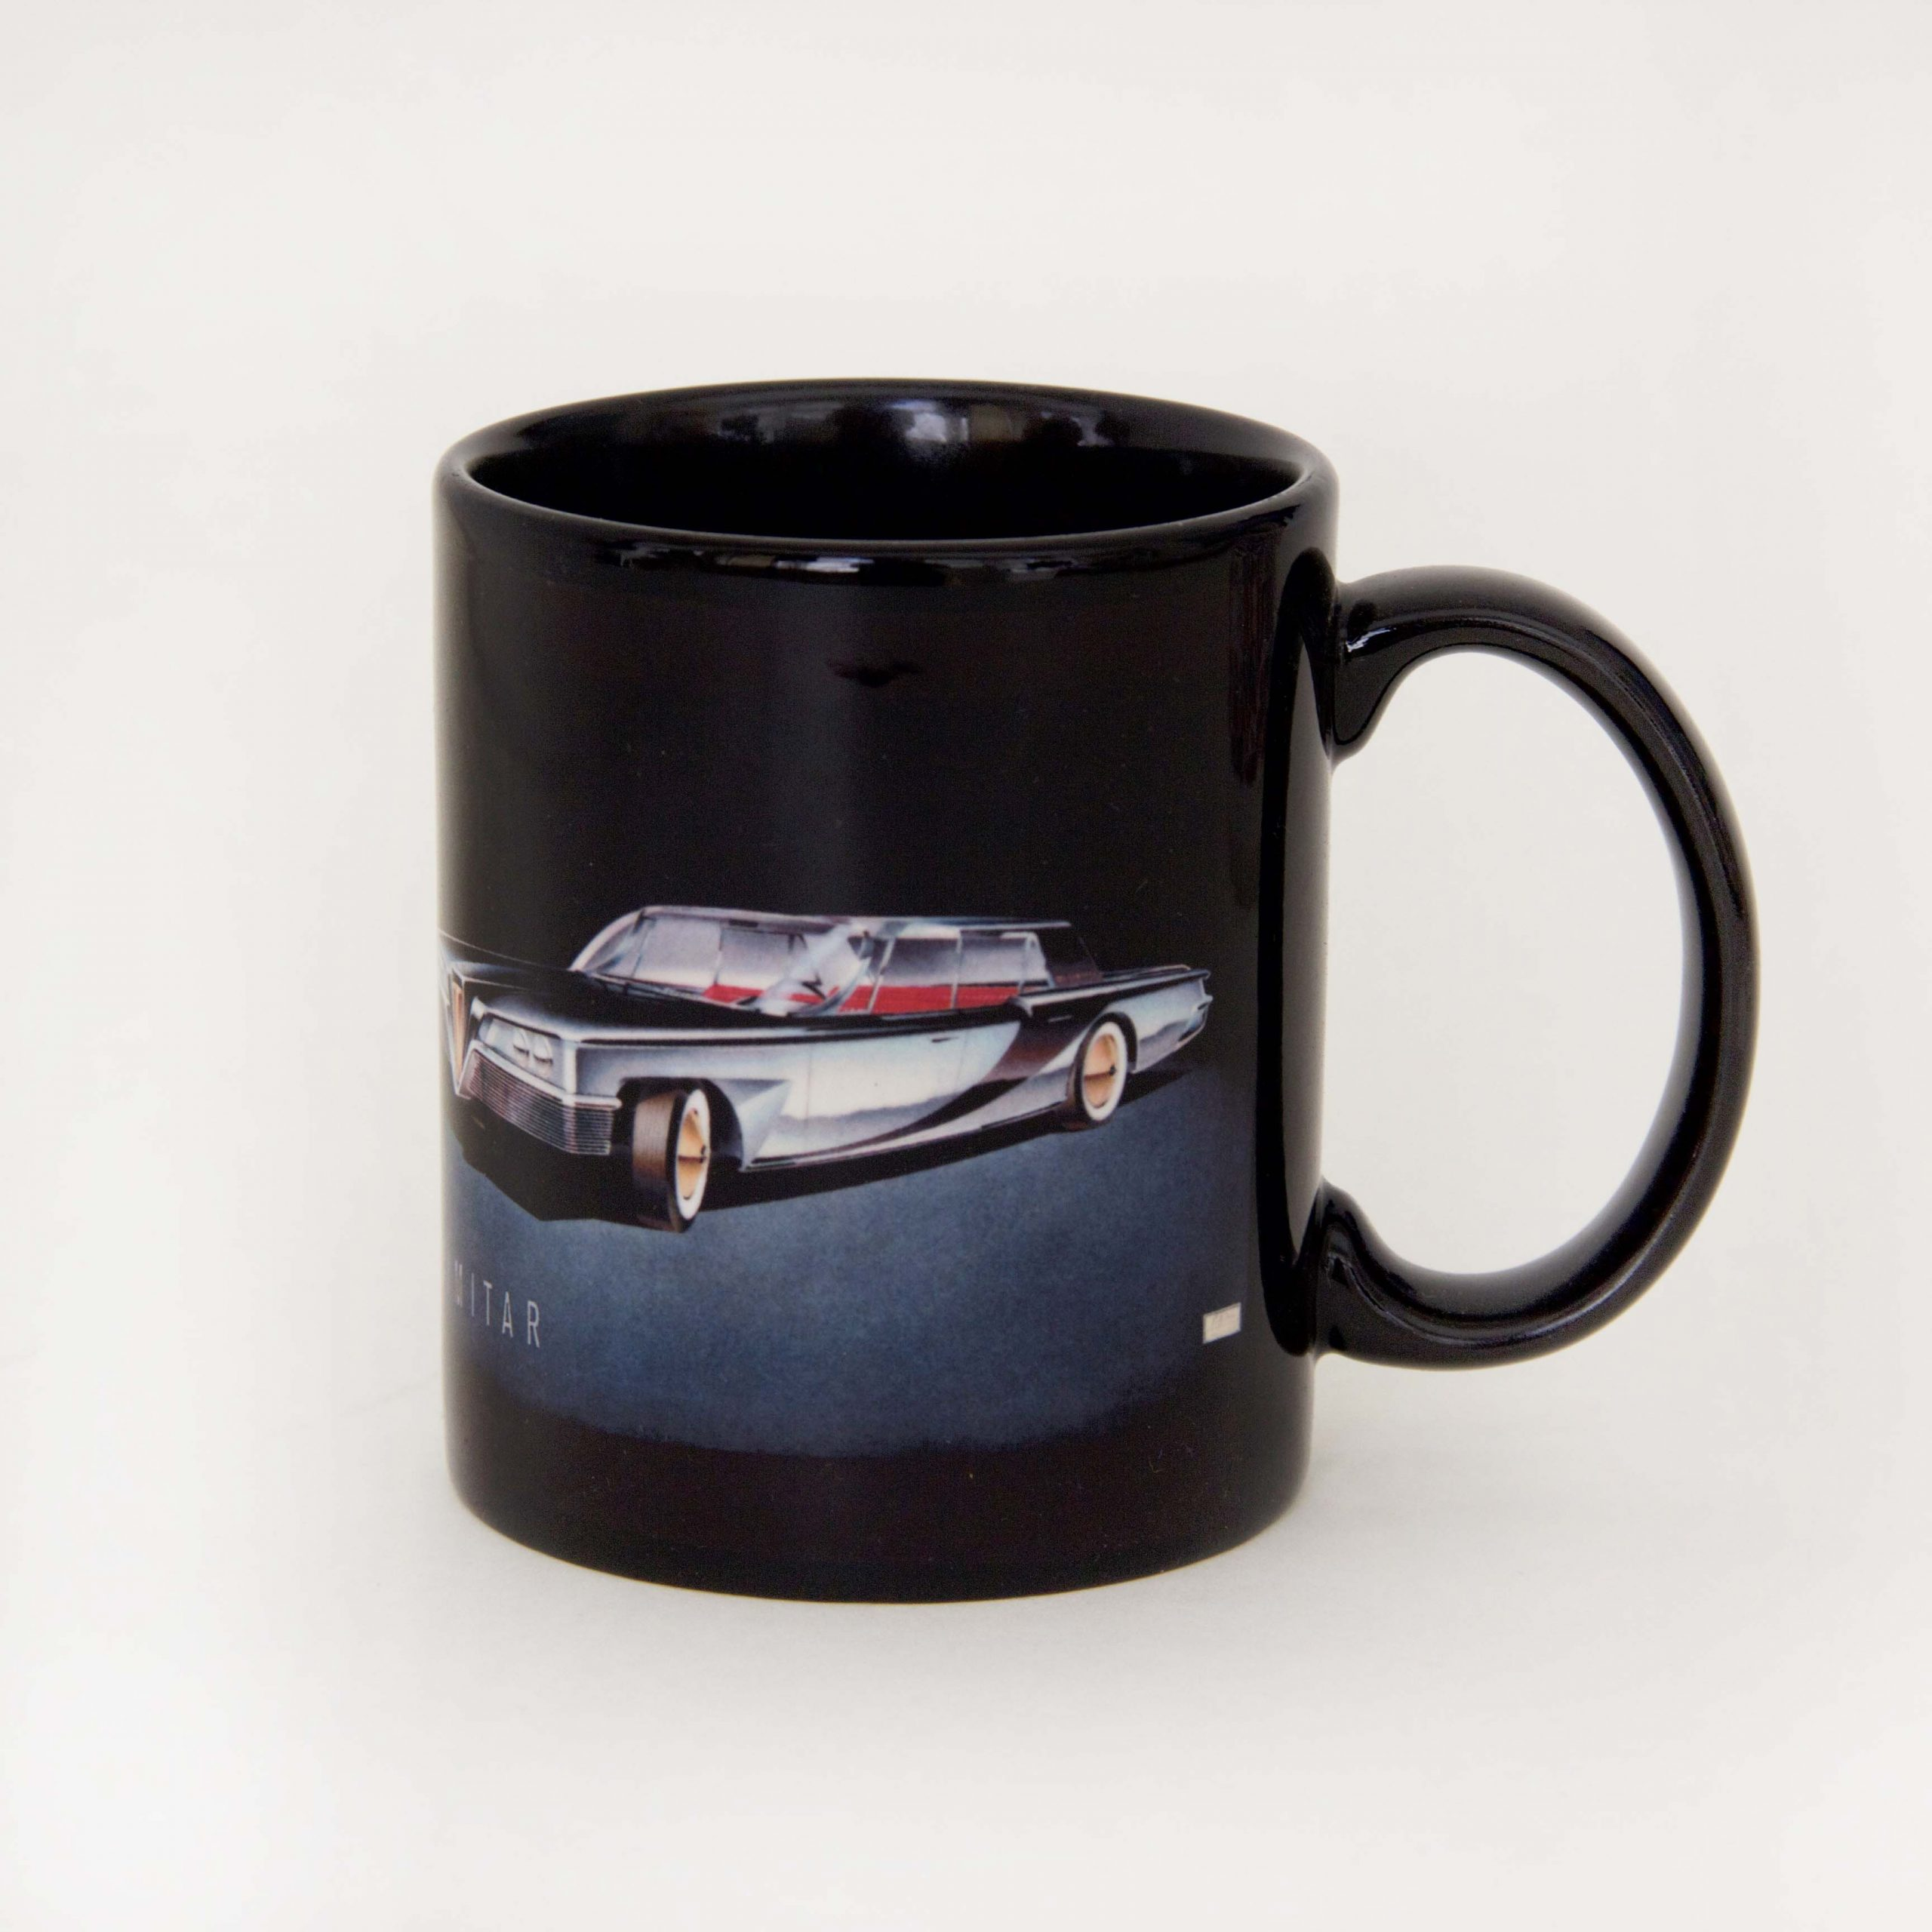 11 oz Black mugs with full color printing